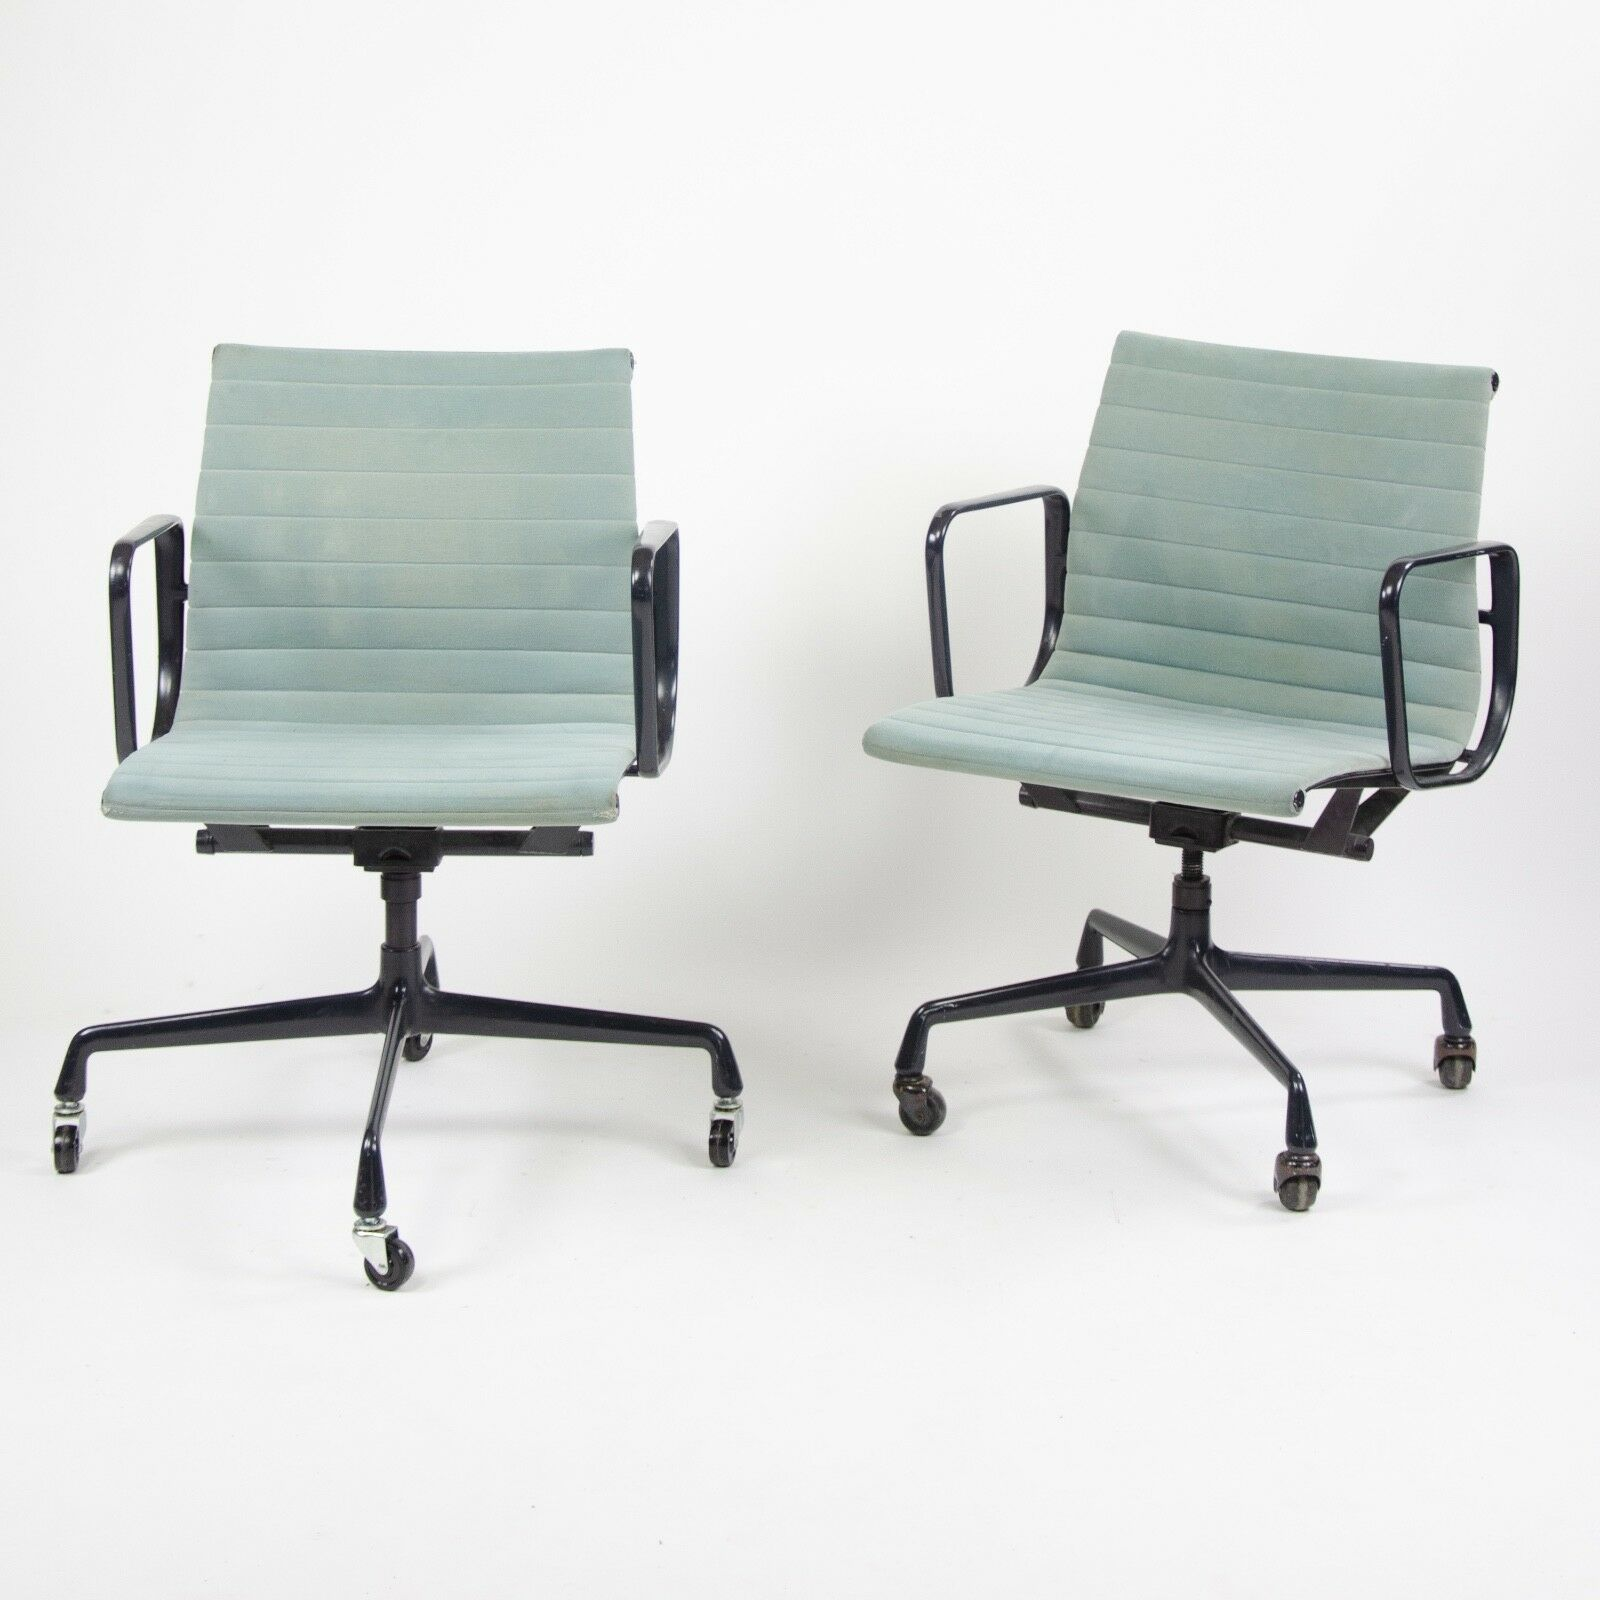 Details About 1985 Eames Herman Miller Aluminum Group Executive Desk Chair  Blue/Gray Fabric 2x